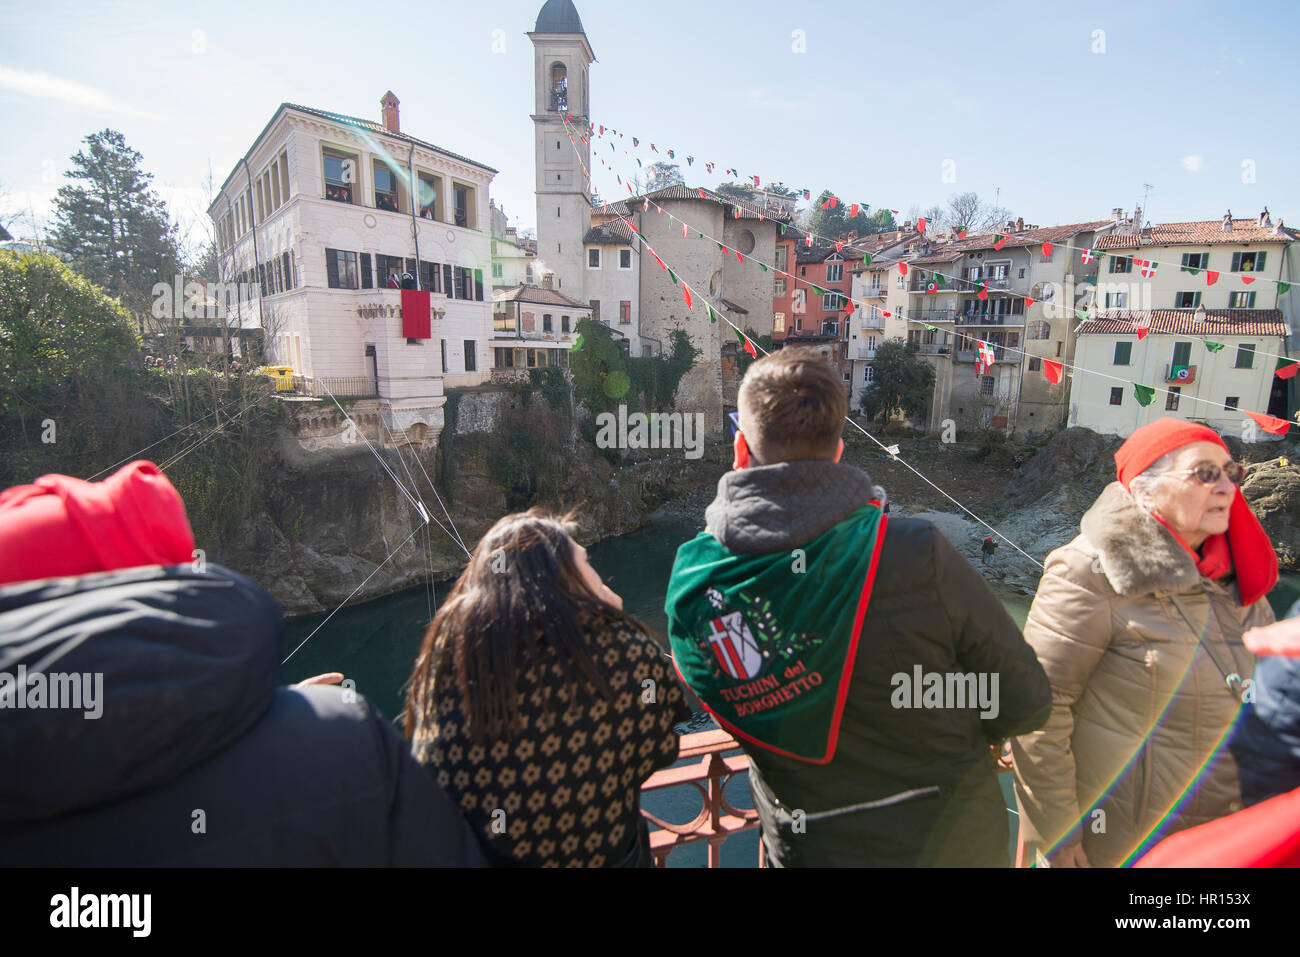 Ivrea, Piedmont, Italy. 26th Feb, 2017. Ivrea, Italy-February 26, 2017: The traditional battle of the oranges during Stock Photo